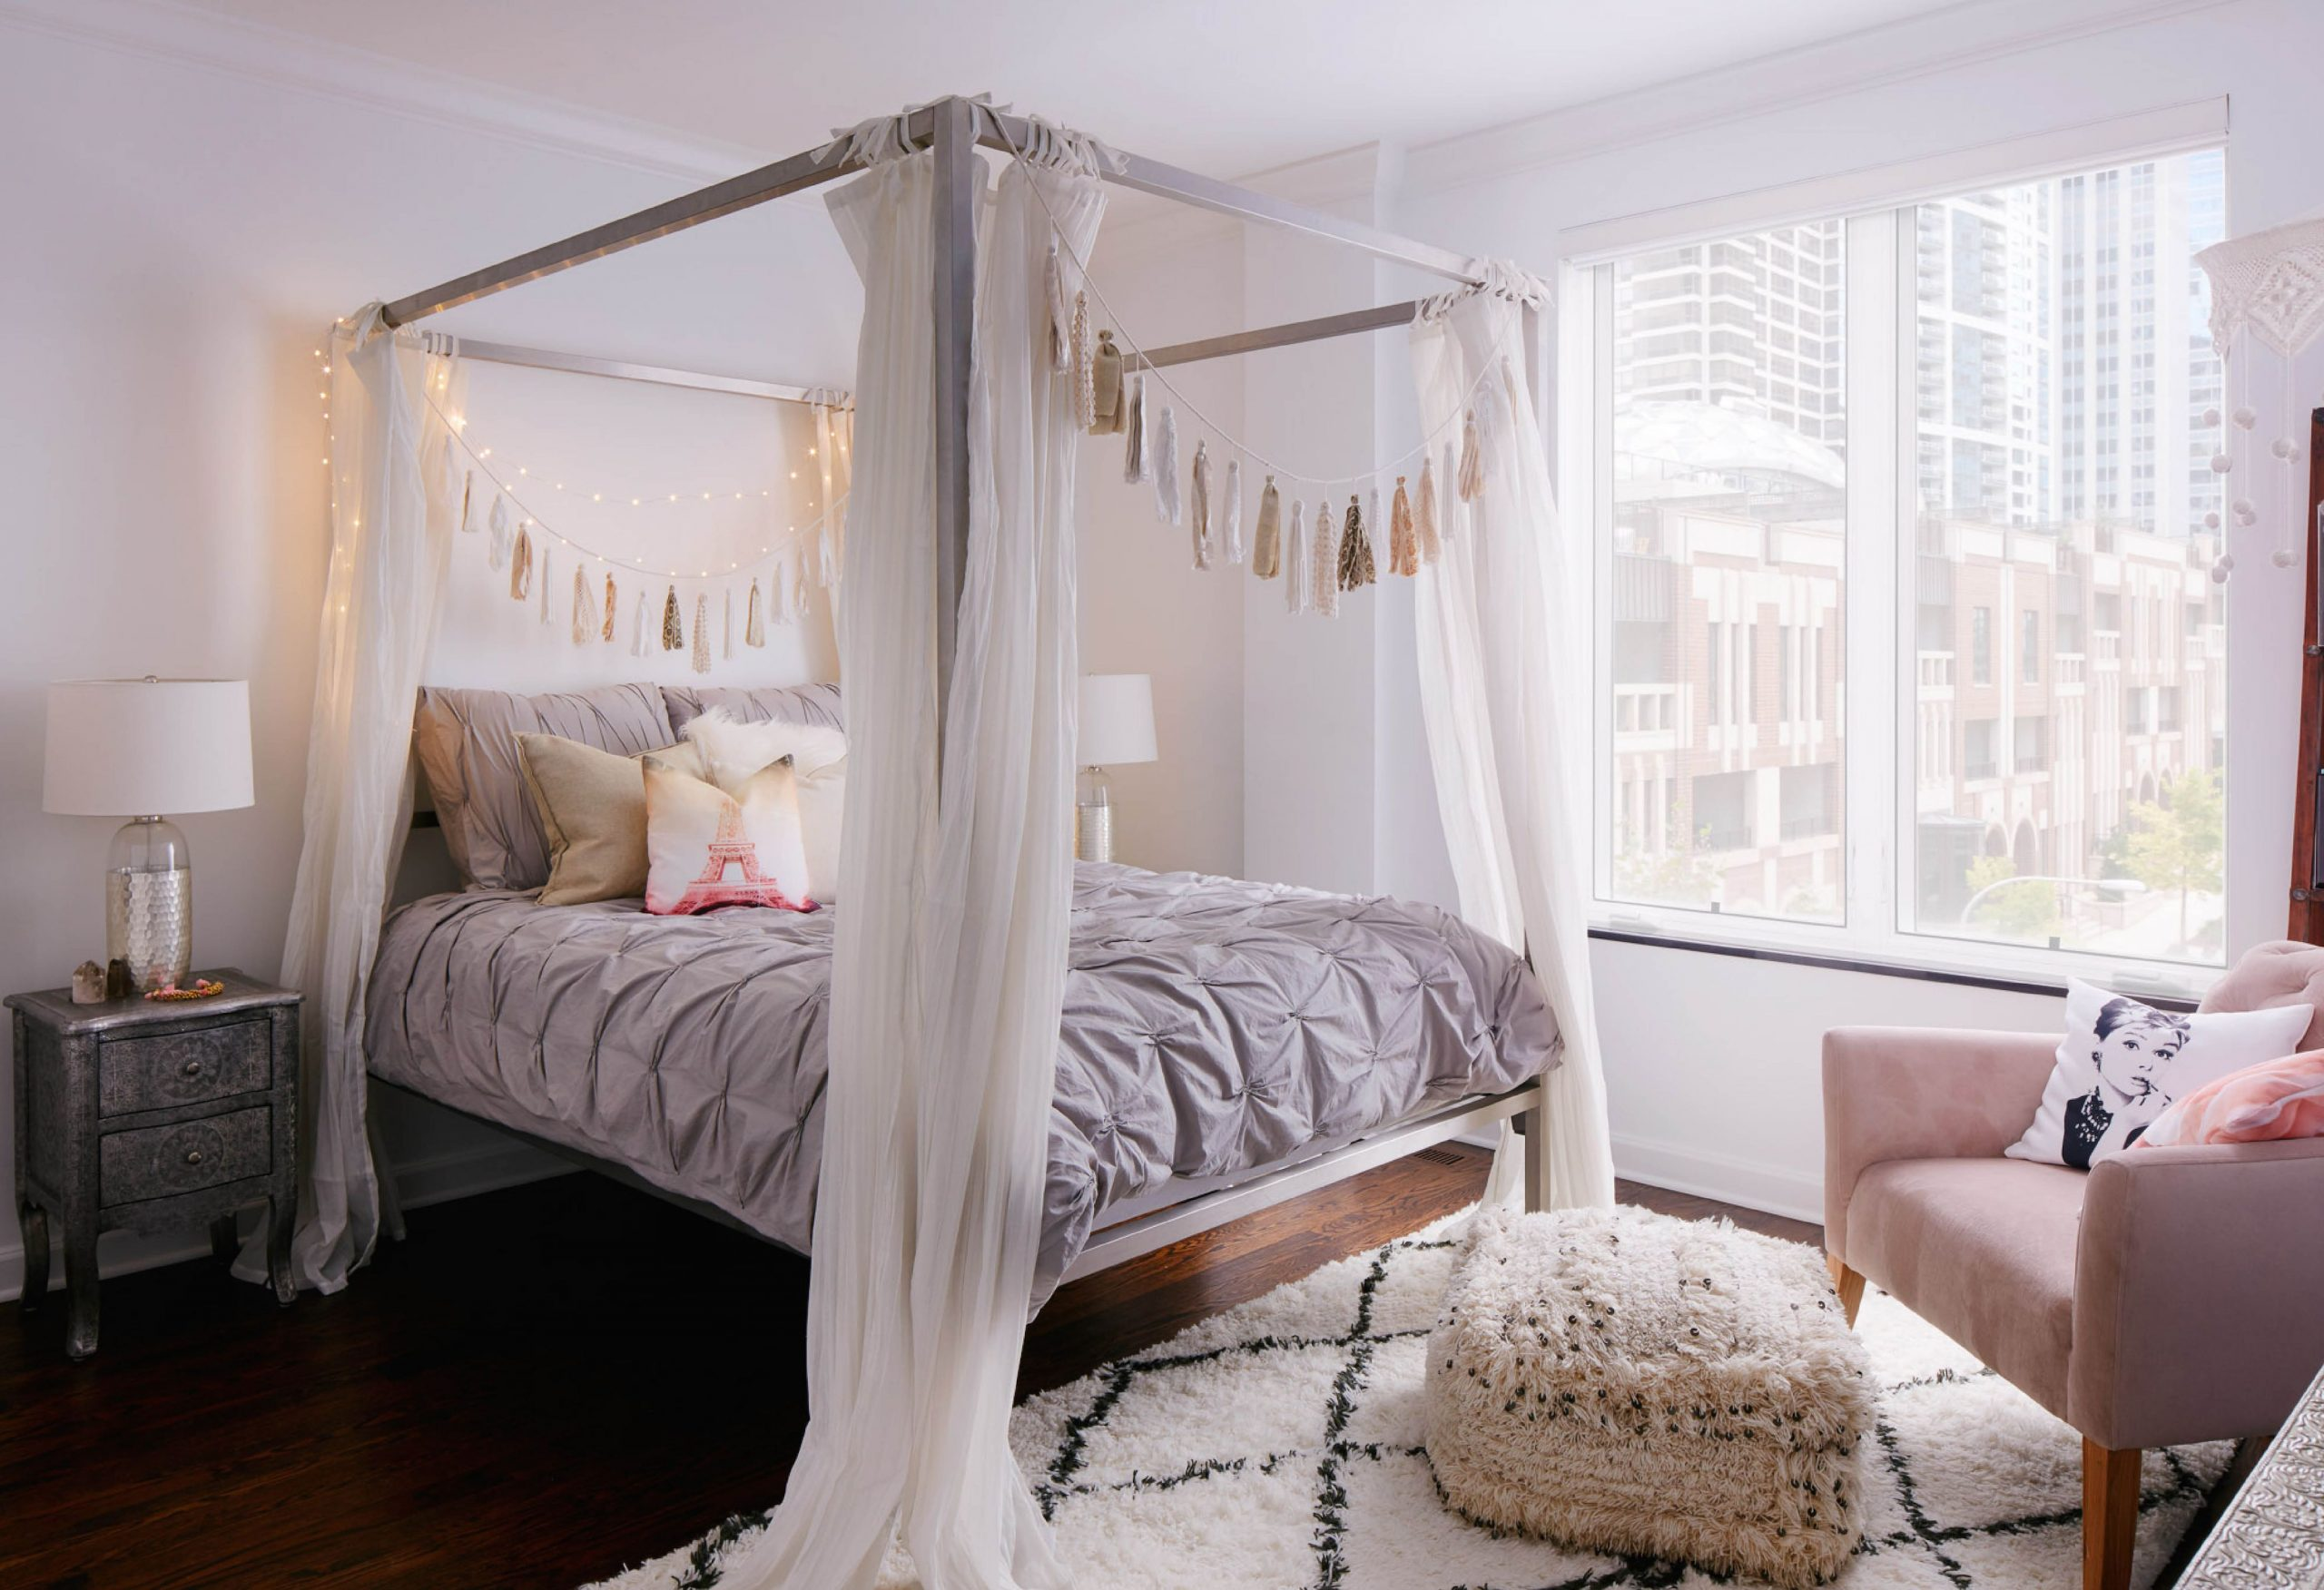 Top 10 Best Buy Canopy Bed Online India Comparison